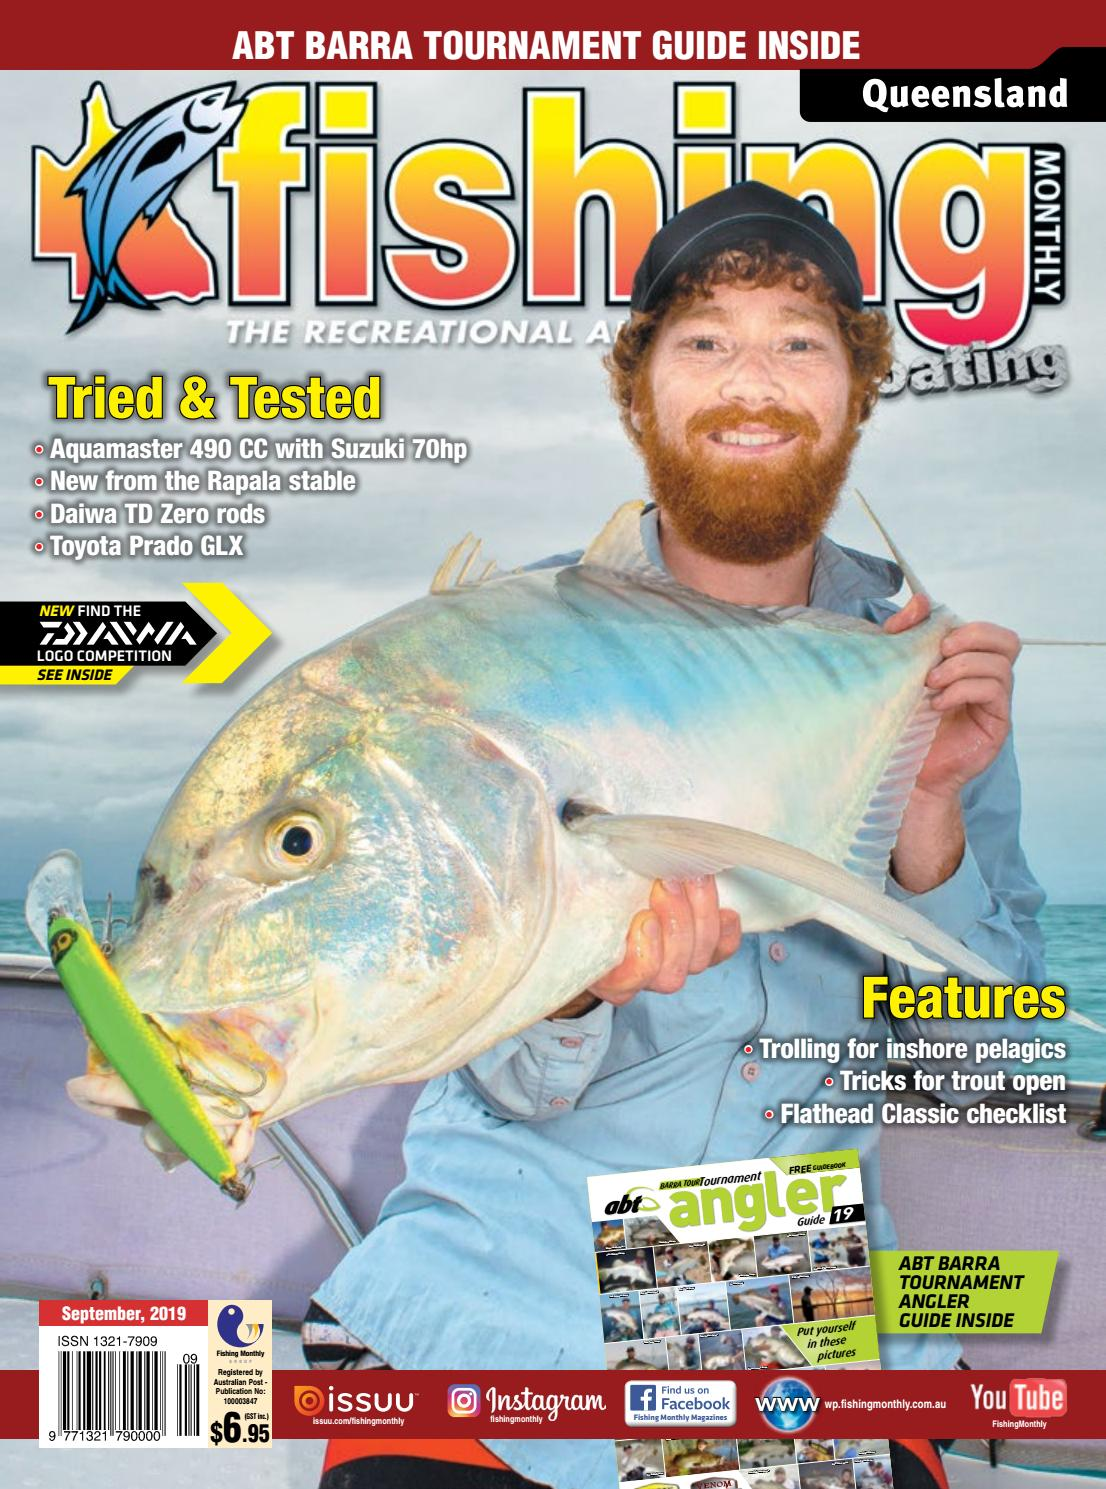 Queensland Fishing Monthly September 2019 by Fishing Monthly